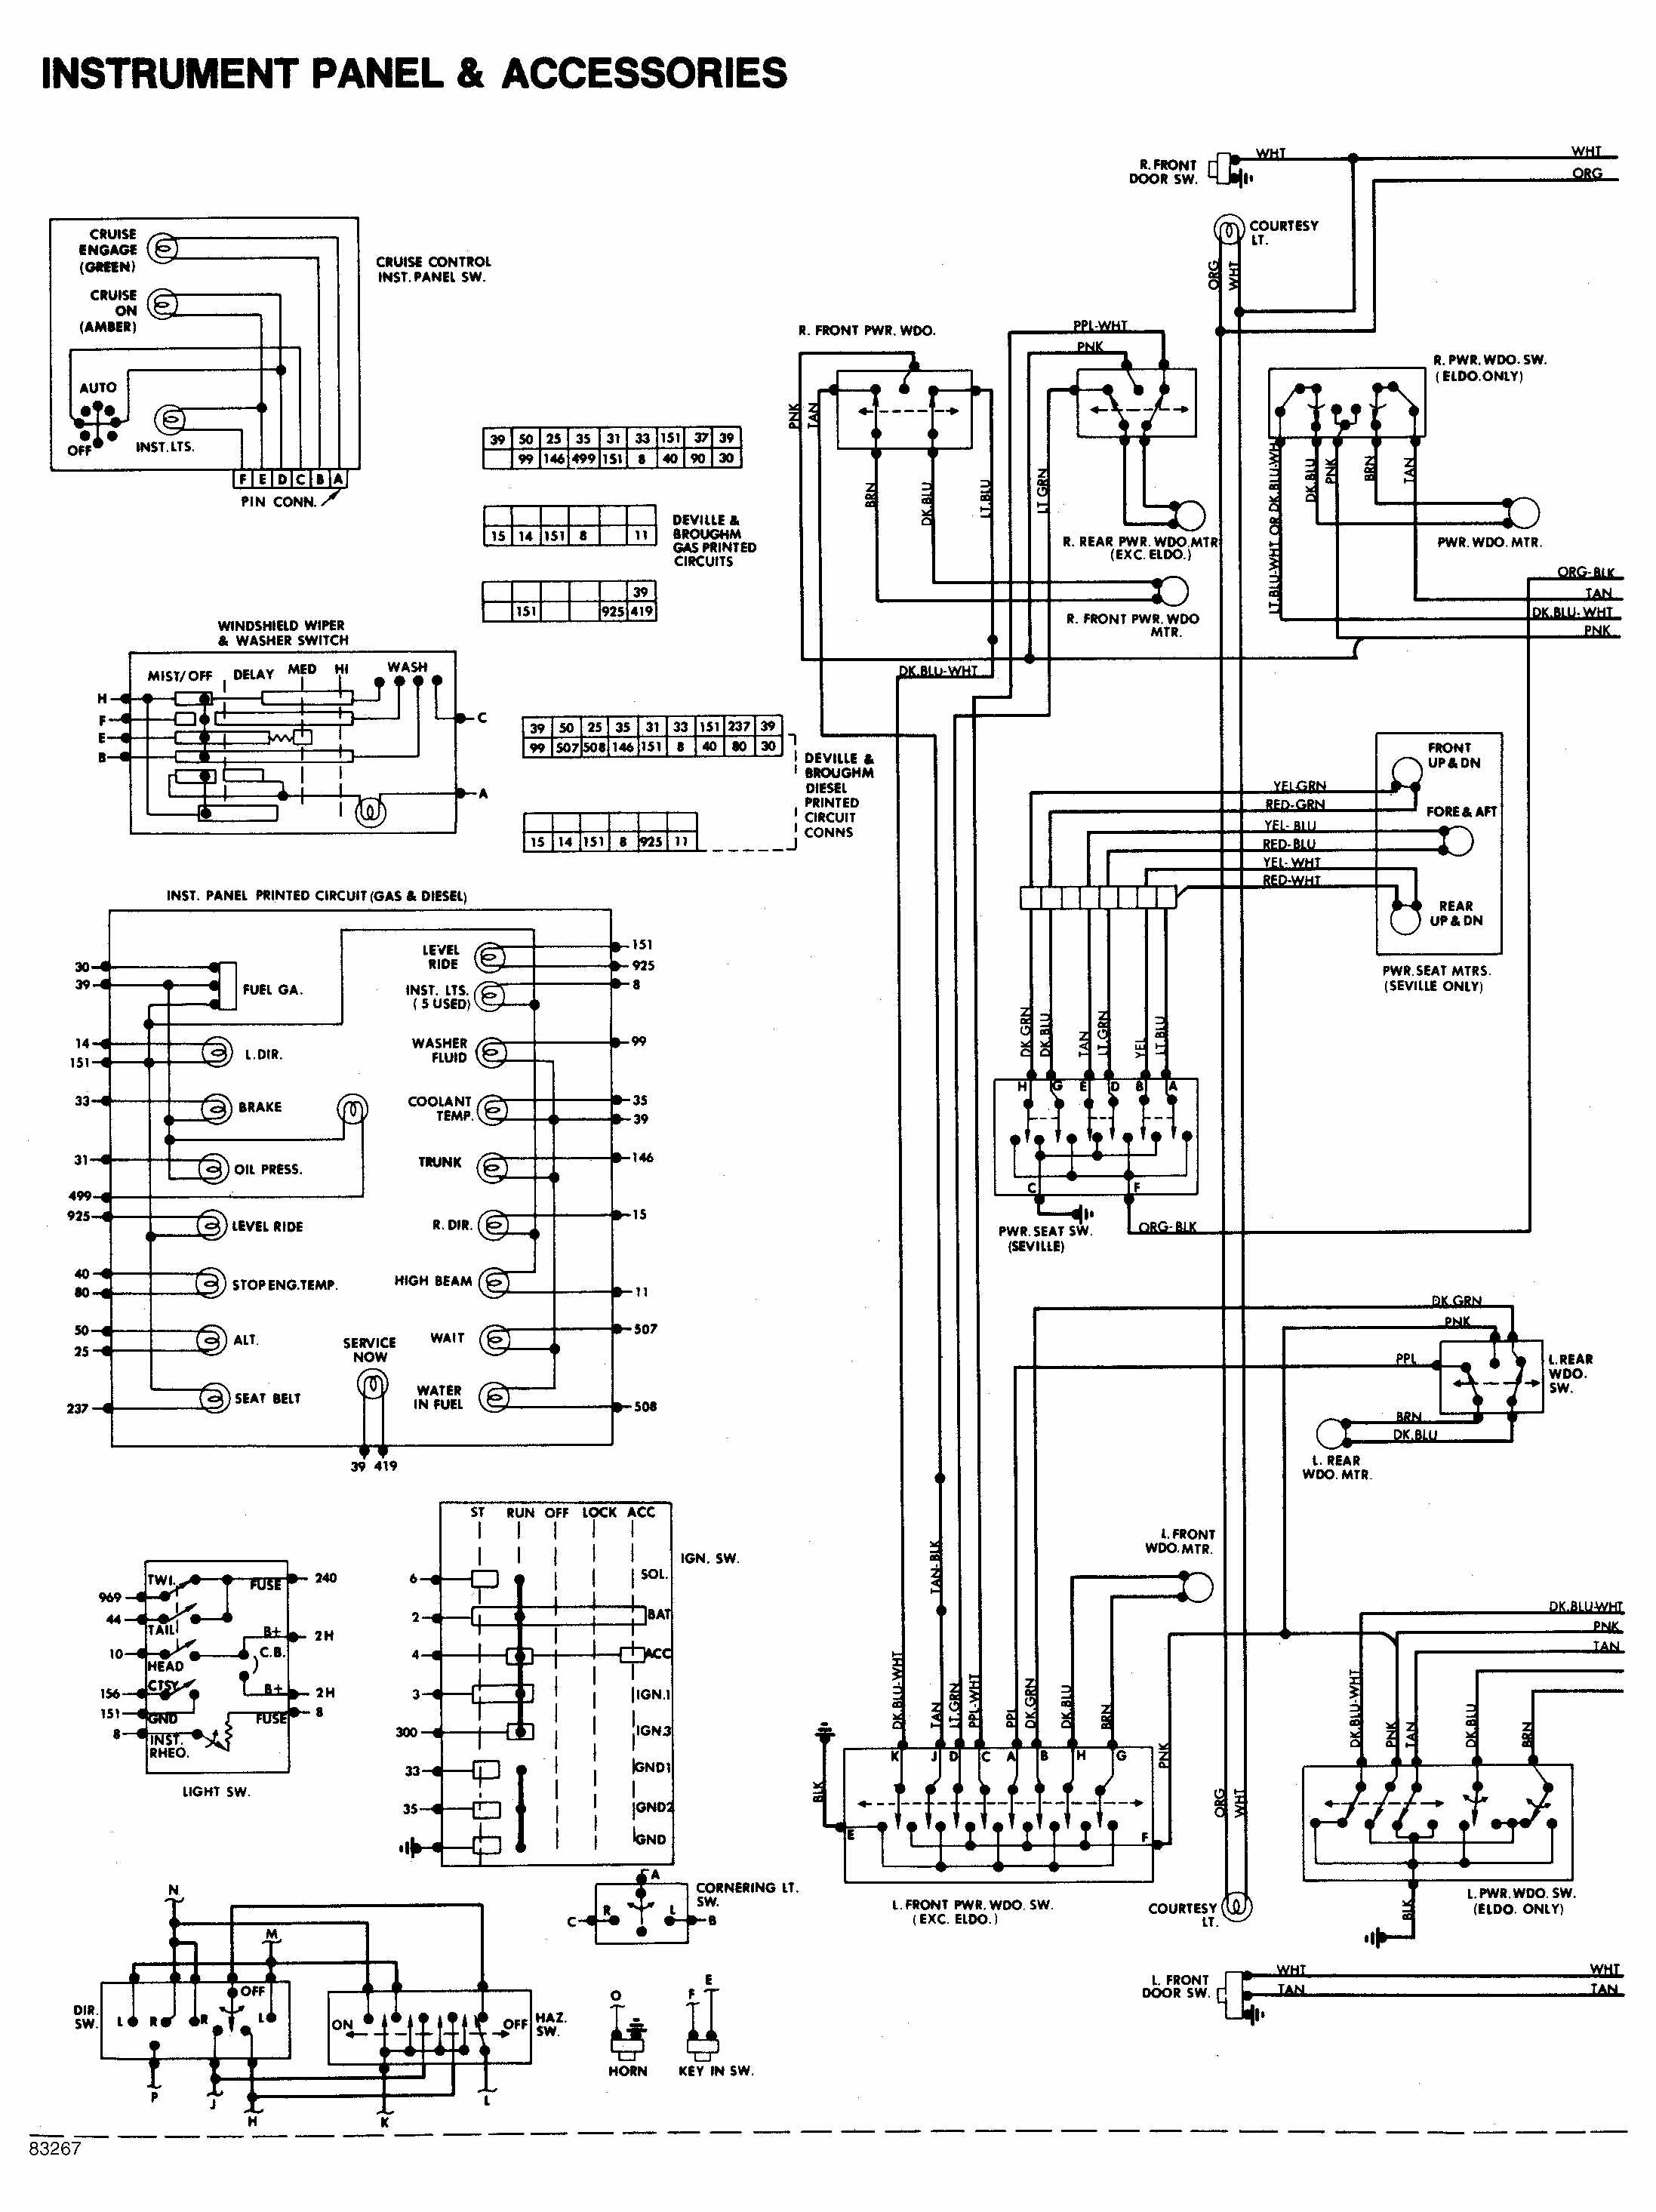 Chevy Diagrams Diagram Further Wall Heater Wiring Get Free Image About 1984 Cadillac Deville Instrument Panel And Accessories Drawing A